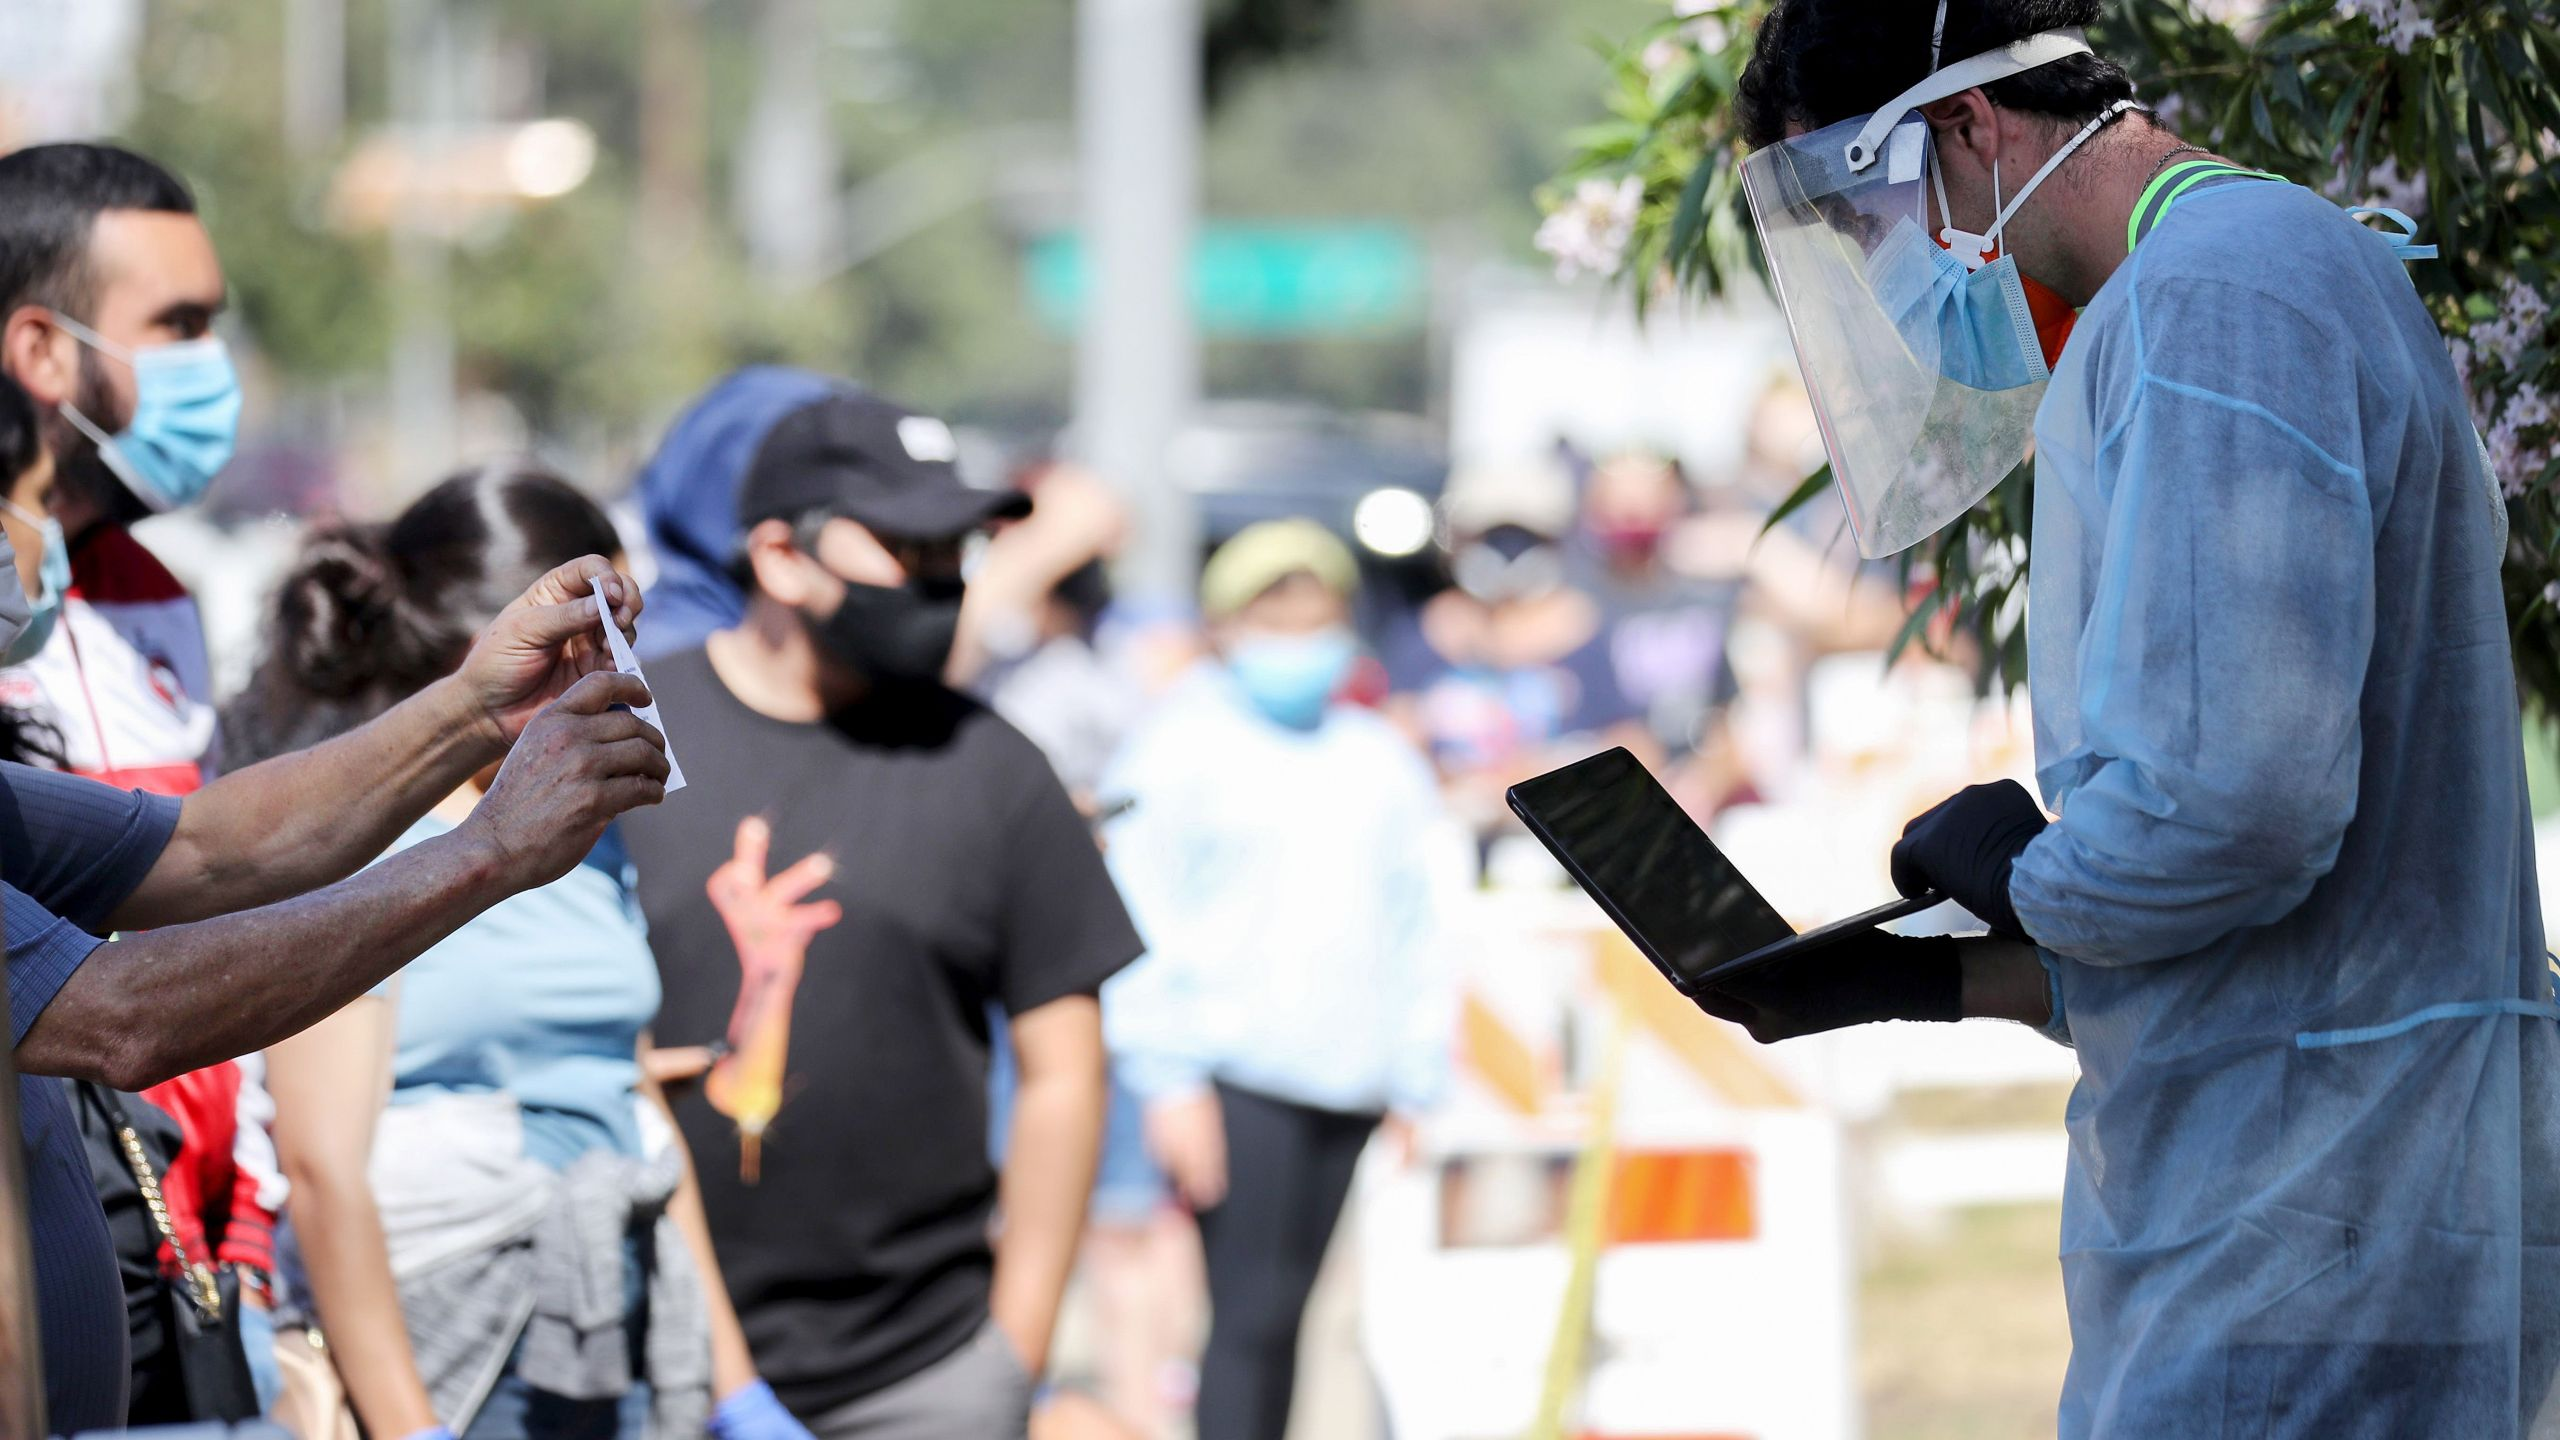 A testing associate dressed in personal protective equipment helps people waiting in line to check in at a COVID-19 testing center at Lincoln Park in Los Angeles on July 7, 2020. (Mario Tama / Getty Images)